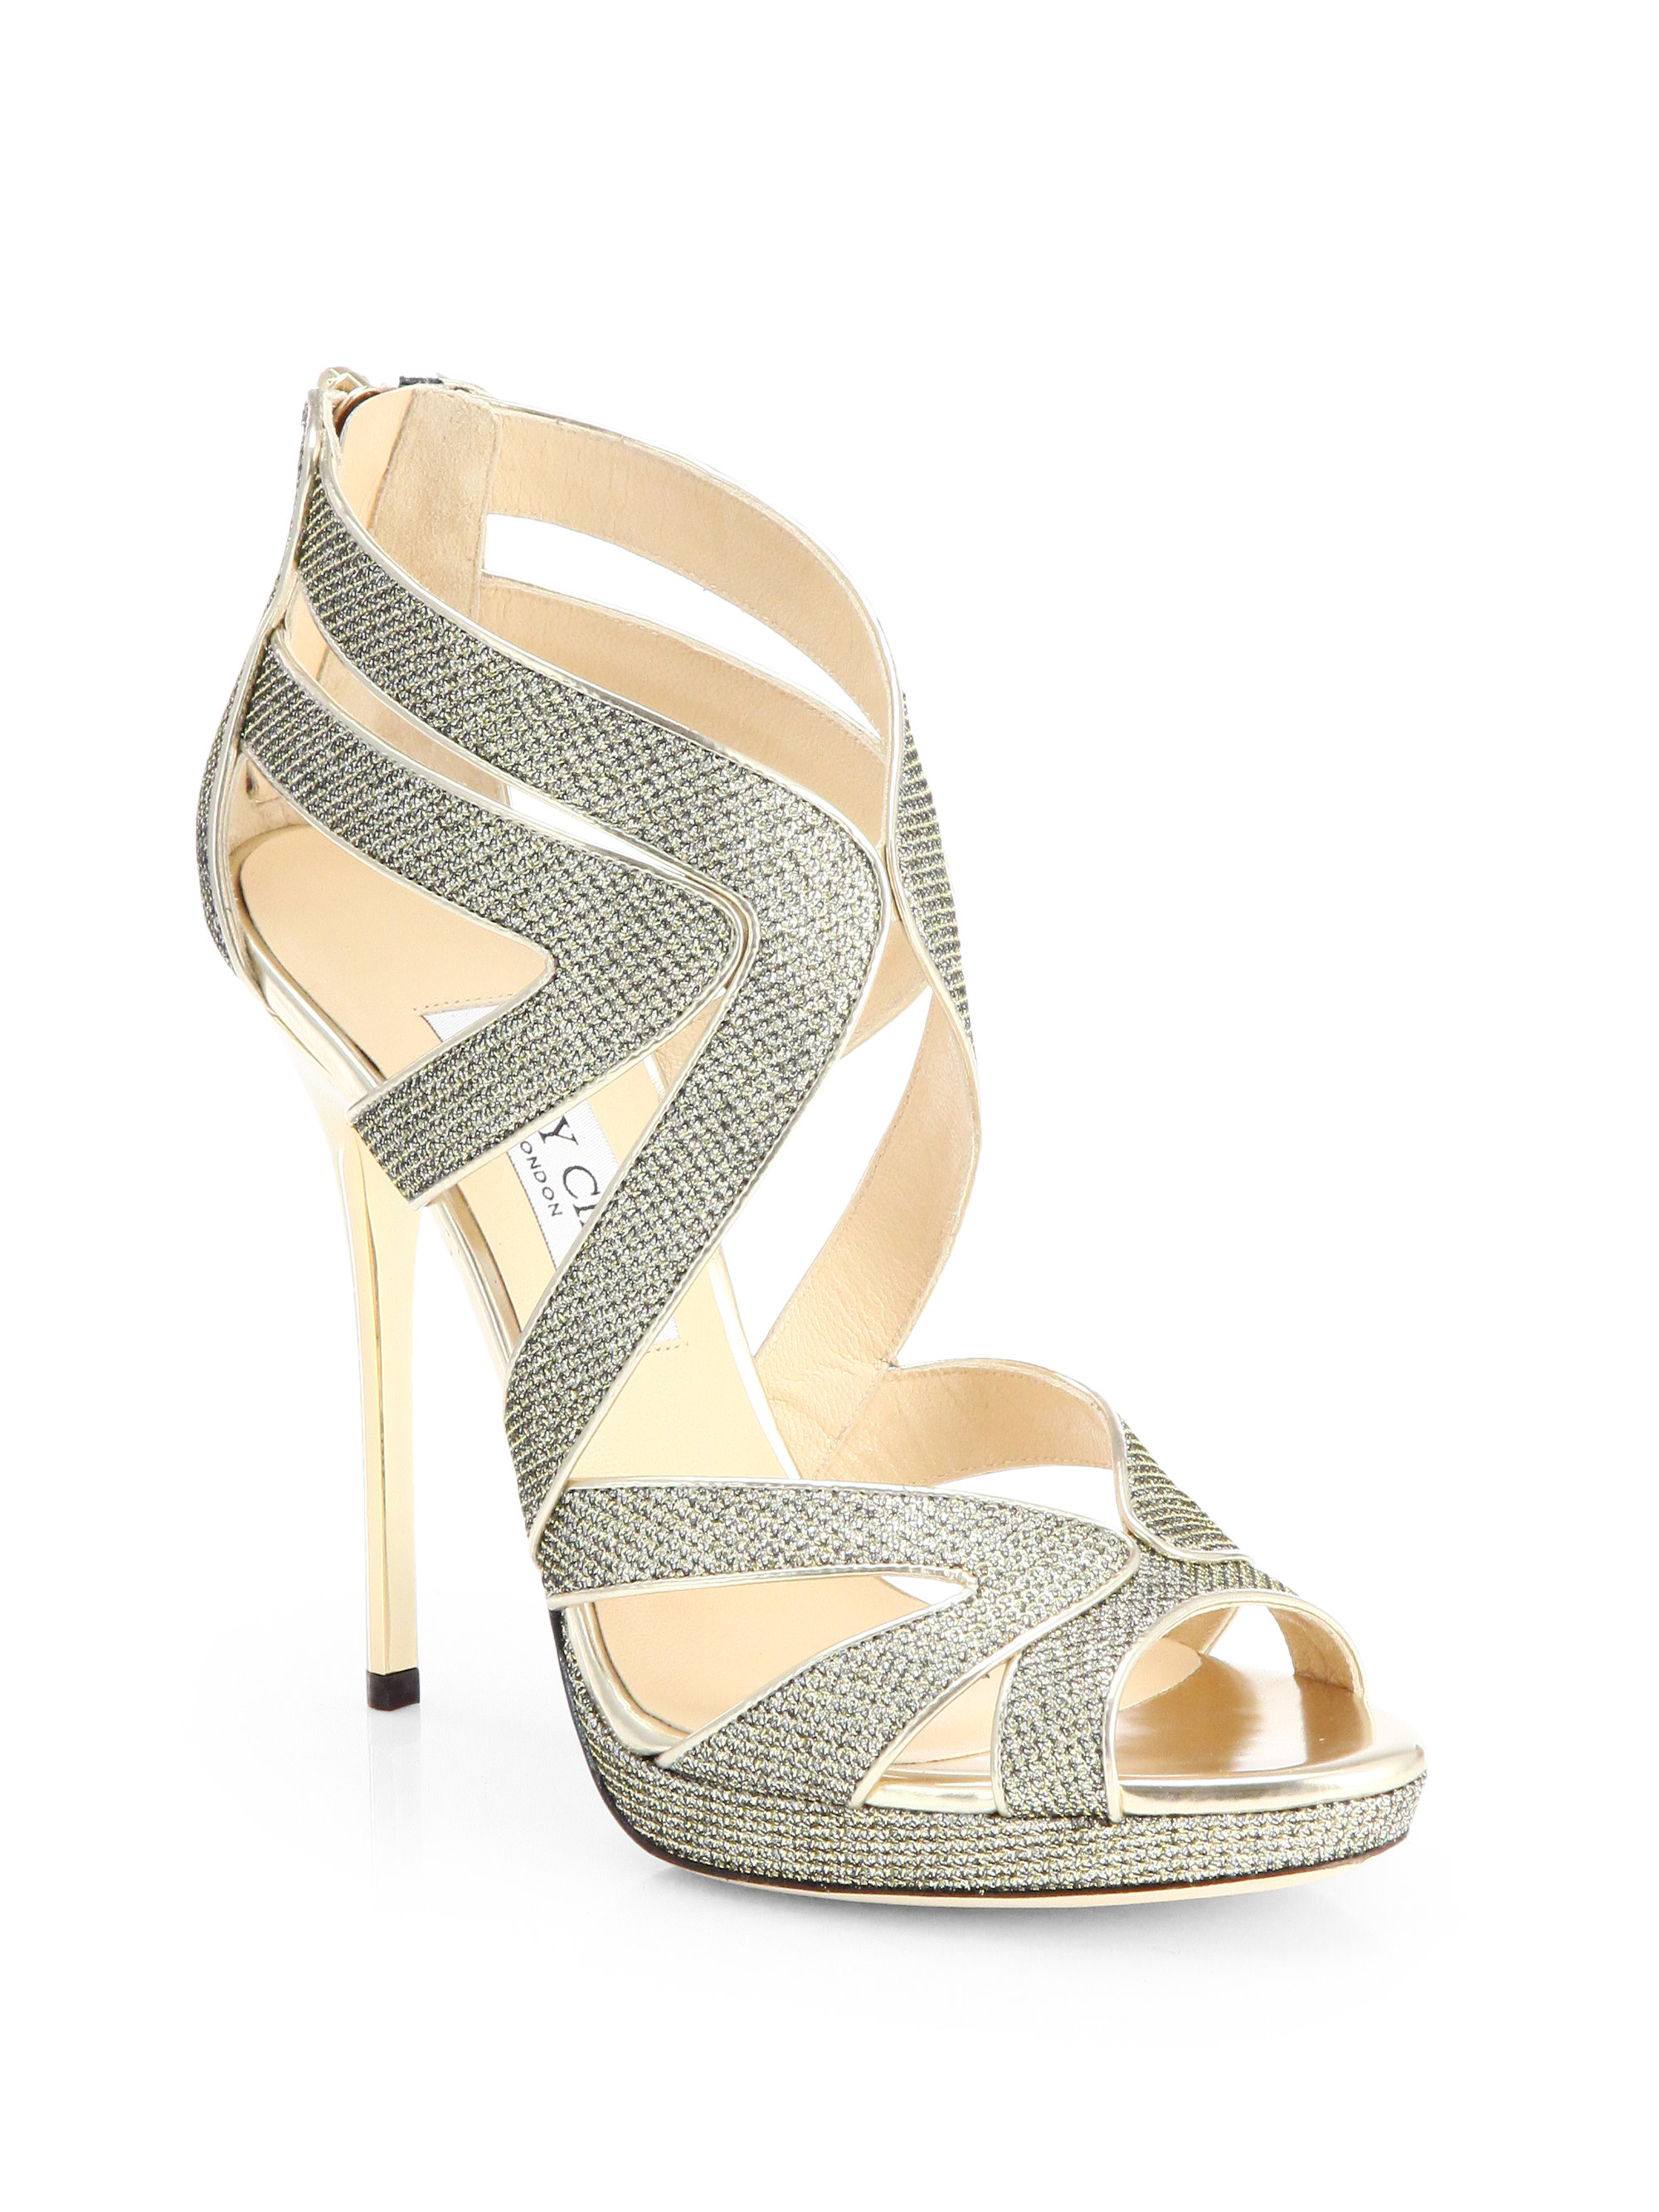 728c62cc80b2 Lyst - Jimmy Choo Collar Glitter Lame Platform Sandals in Metallic